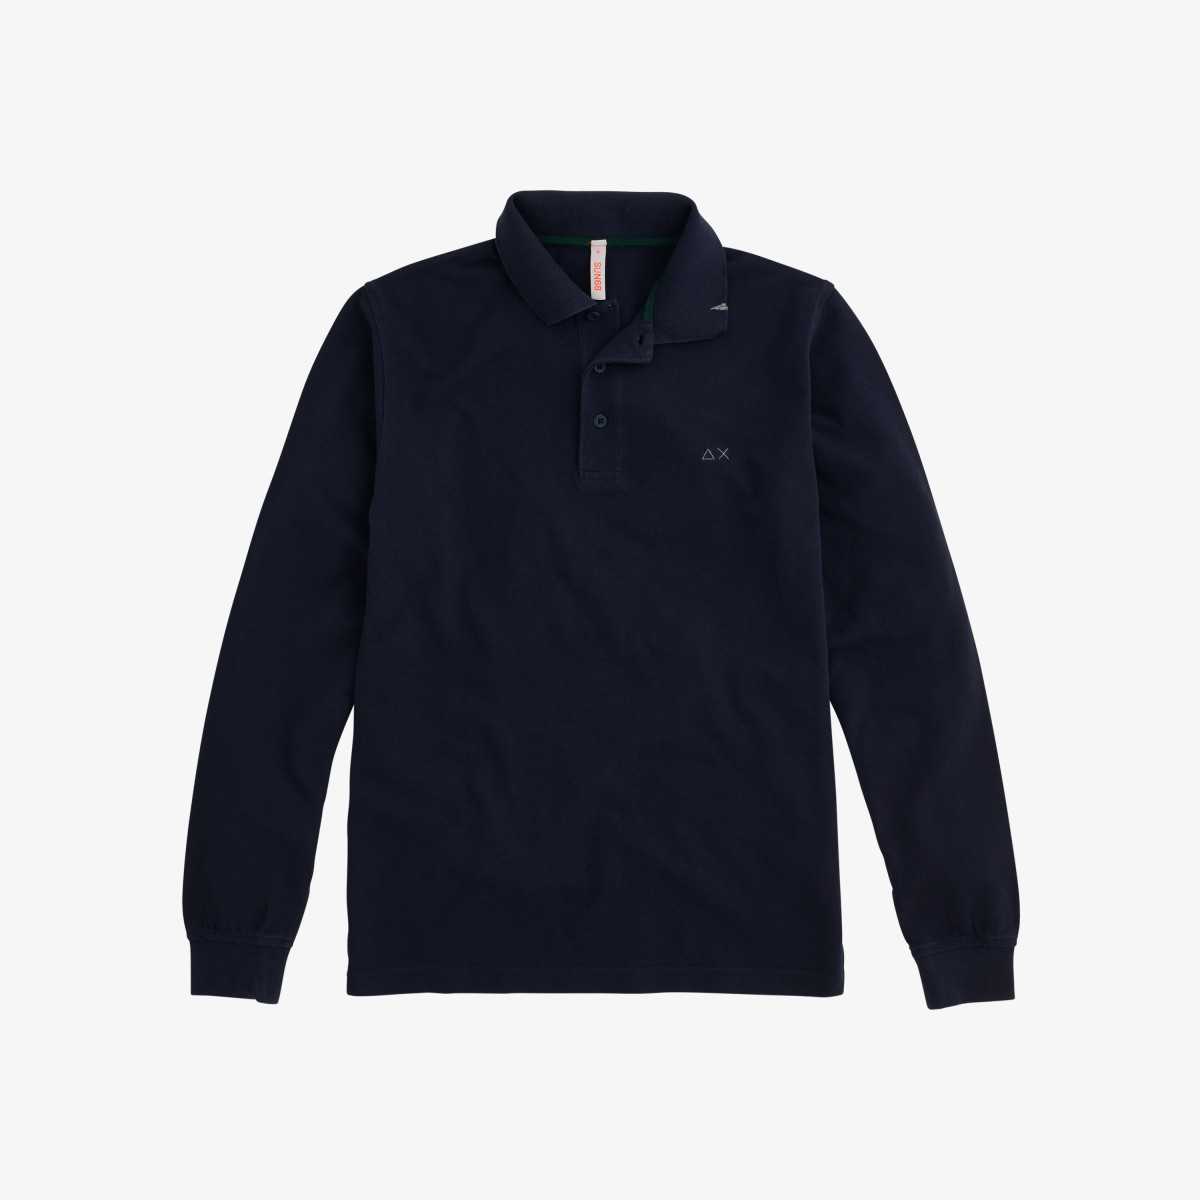 POLO VINTAGE L/S NAVY BLUE